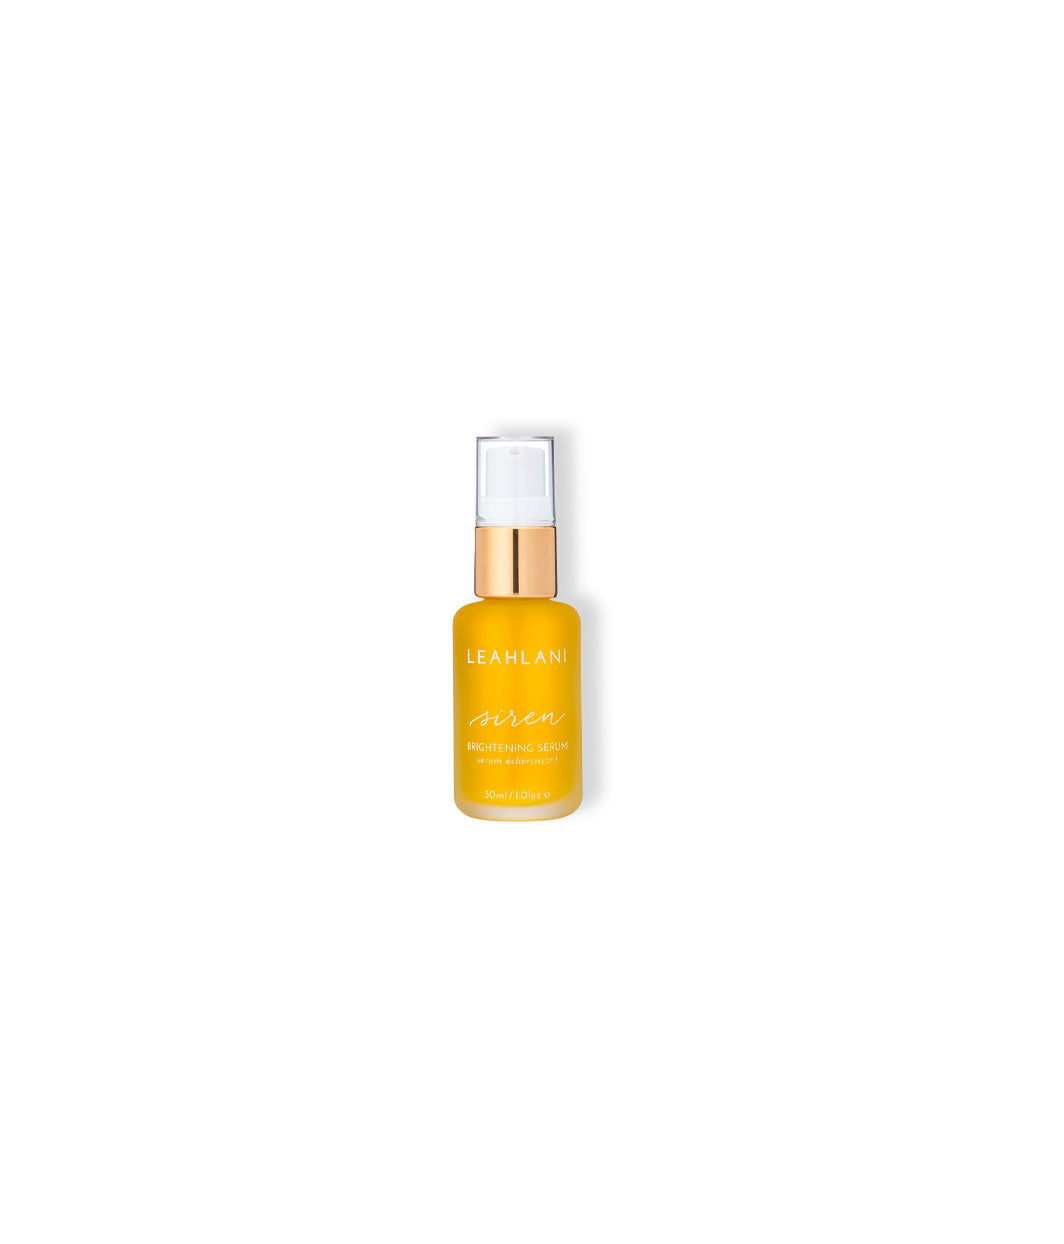 Siren Serum - LEMON LAINE - Facial Oils - Leahlani